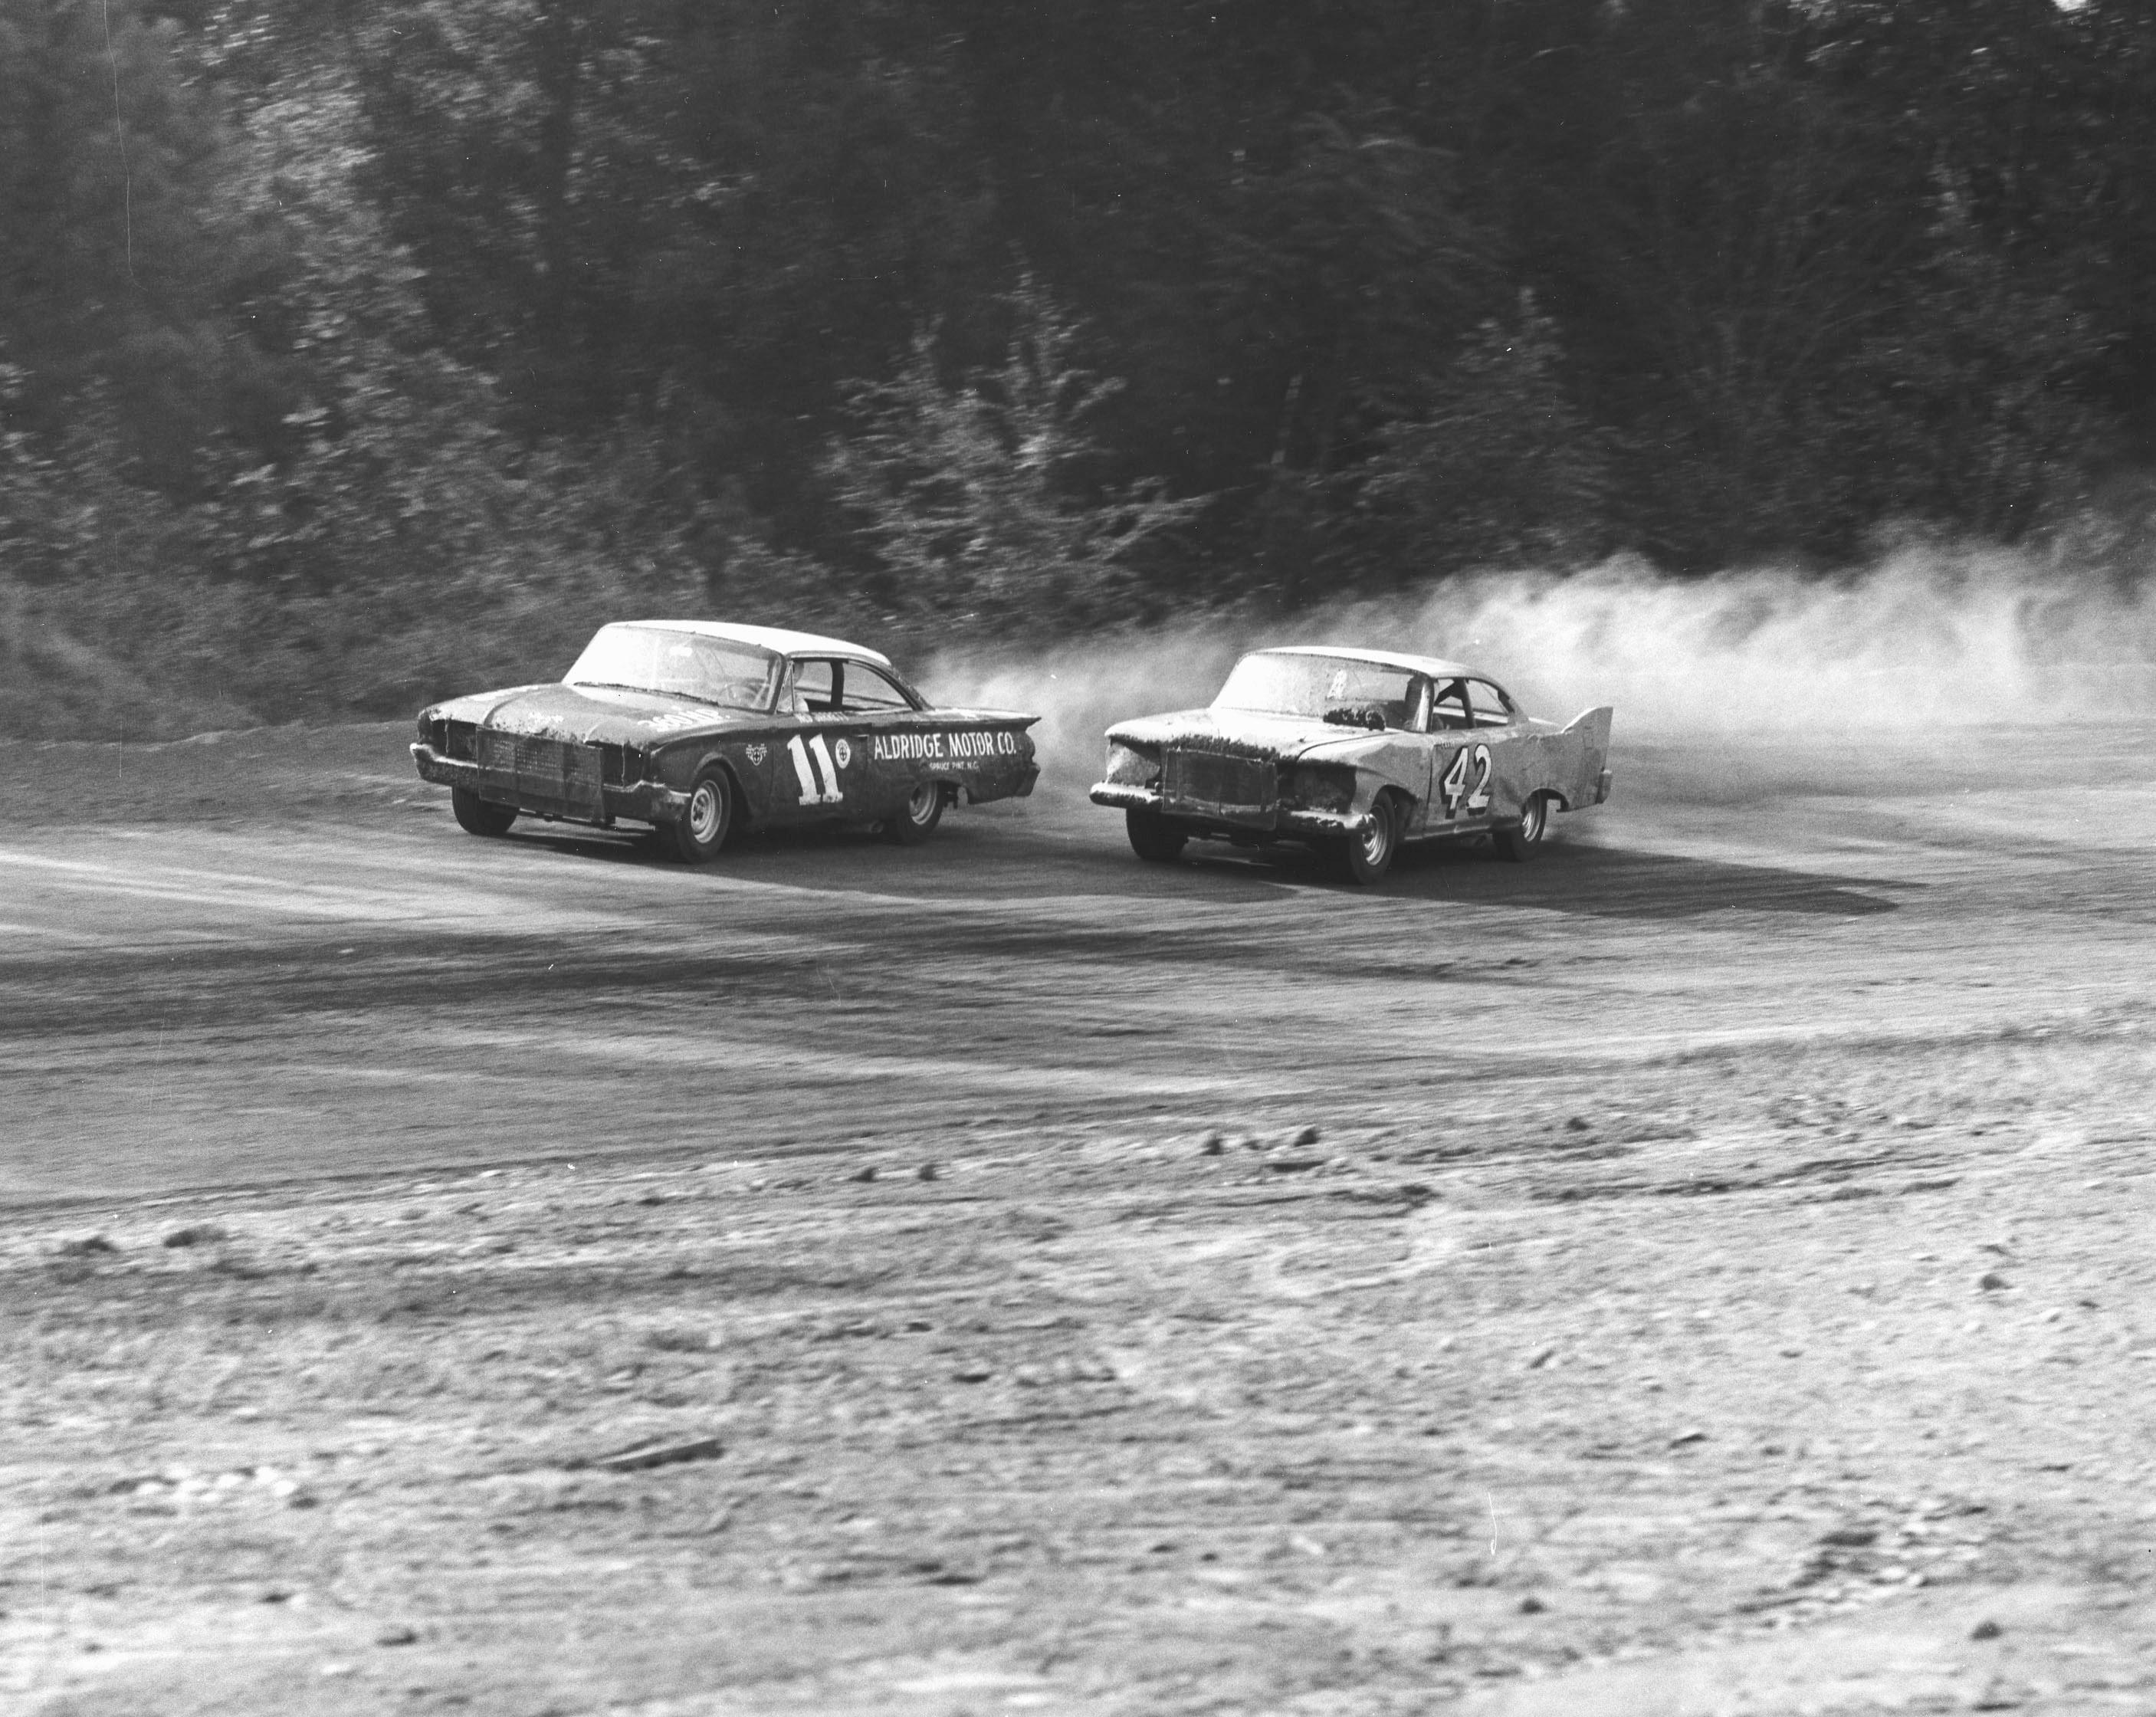 This Week in NASCAR History: August 3-9